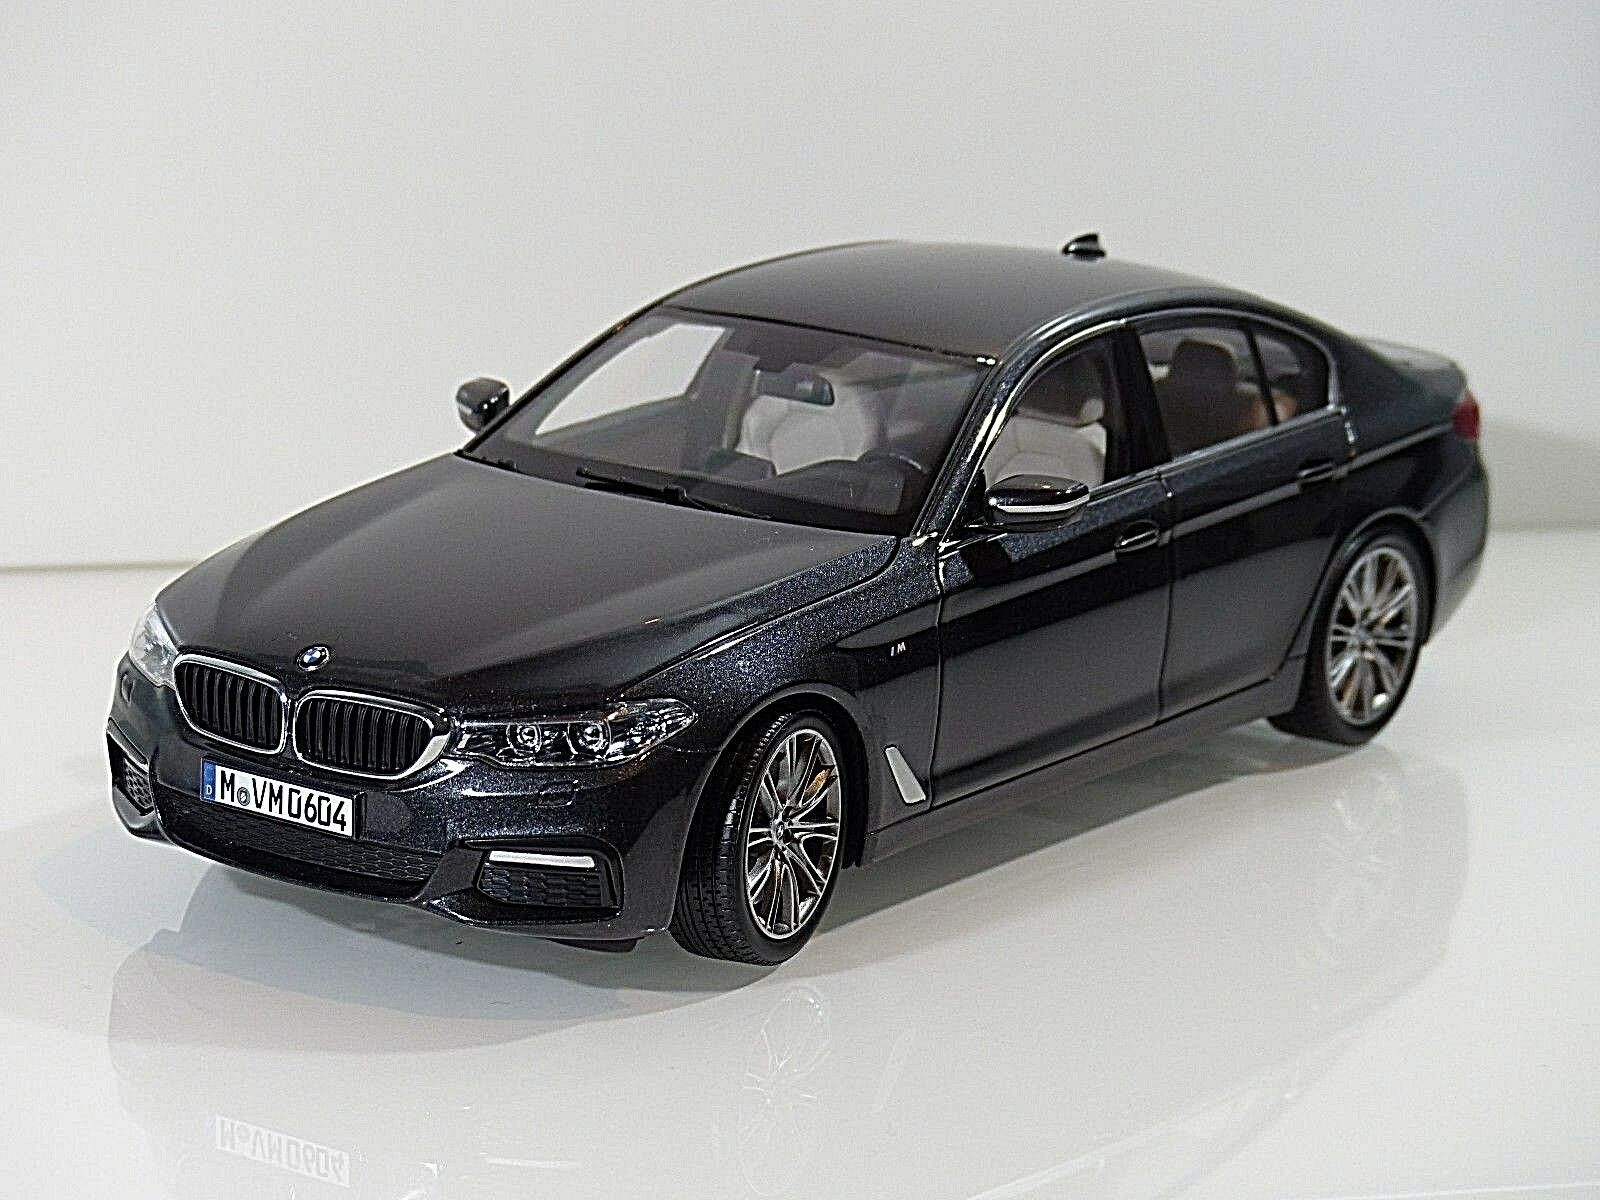 bmw 5er g30 limousine m paket 2017 sophisto grau kyosho. Black Bedroom Furniture Sets. Home Design Ideas